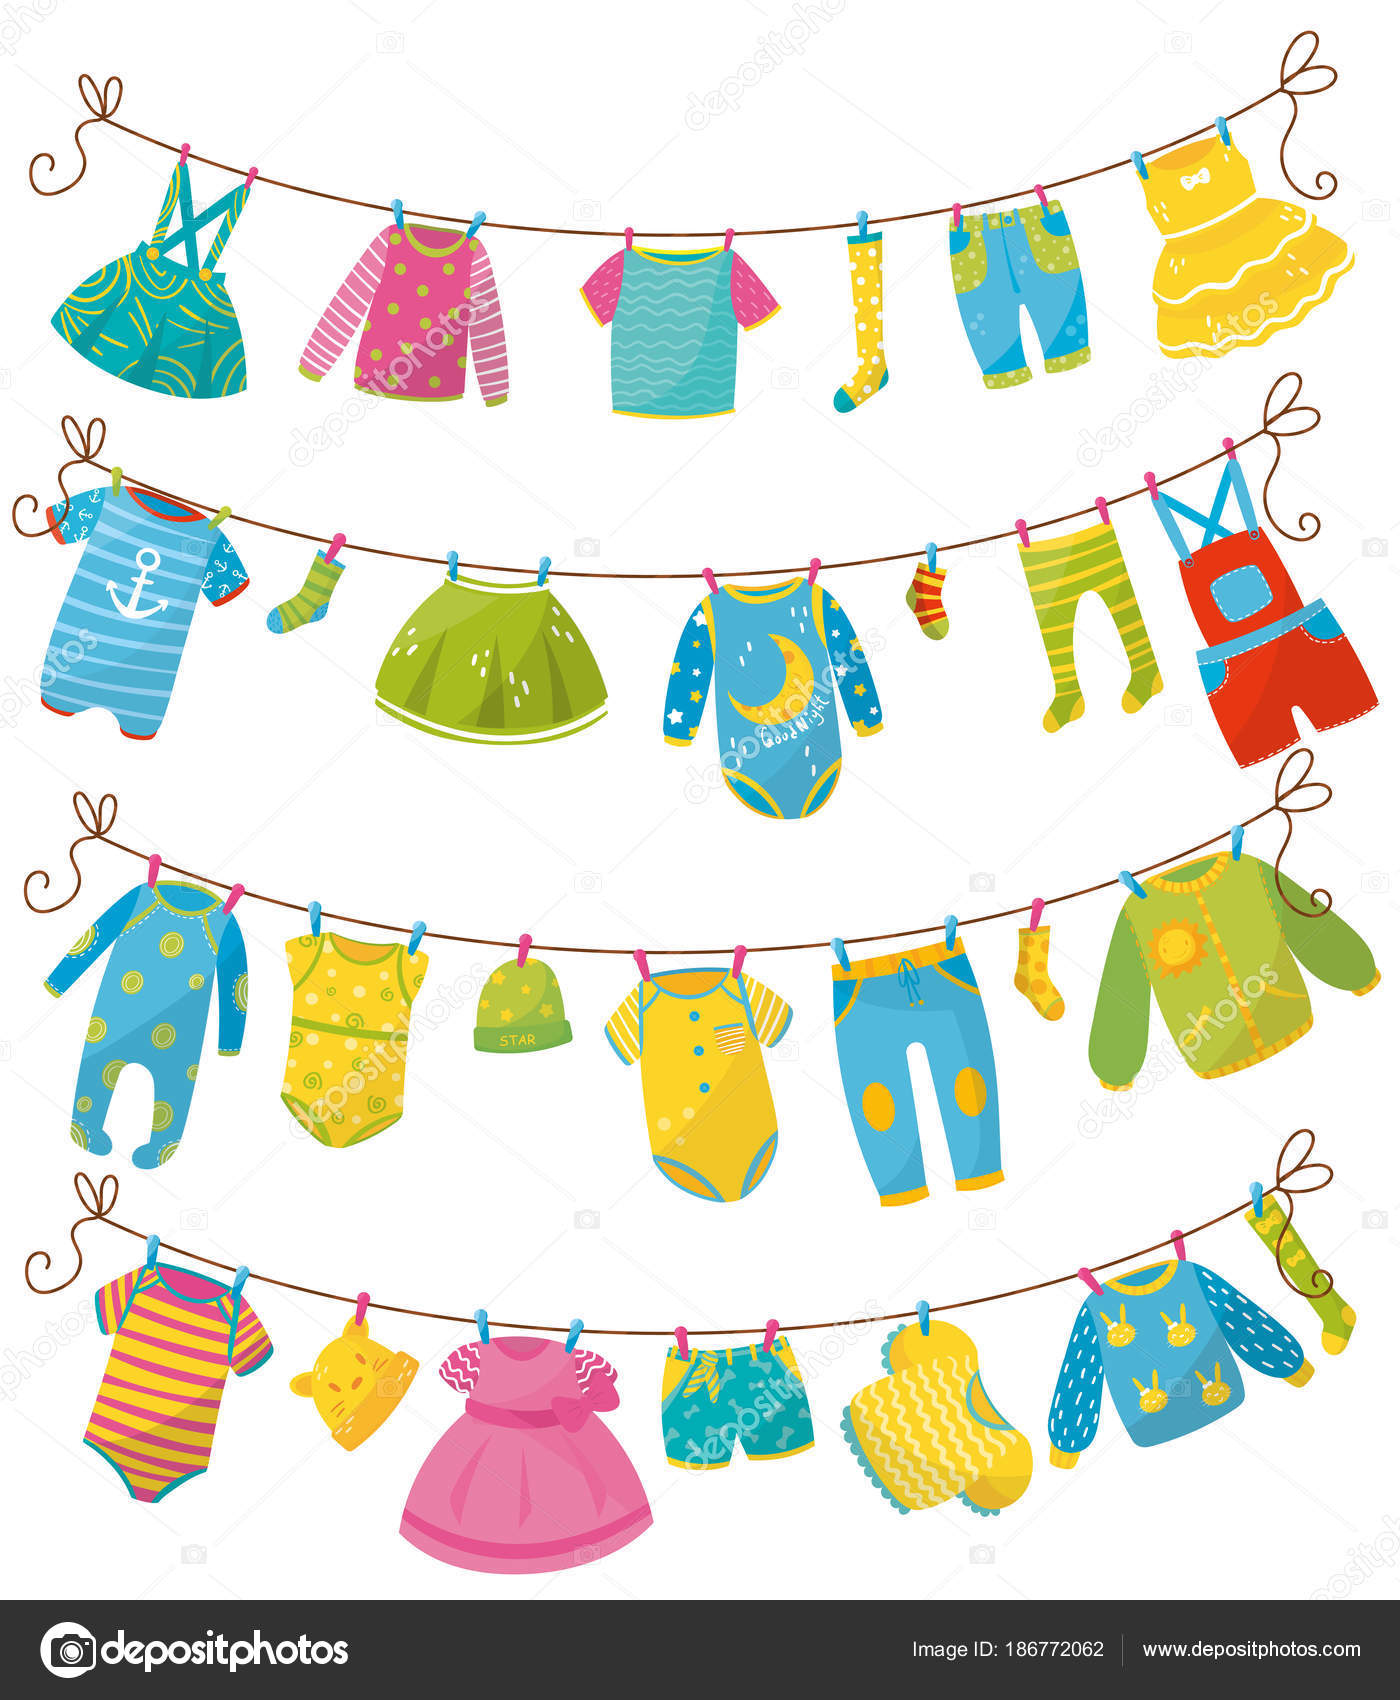 a3227b68ad89 Flat vector set of kids clothes on rope. Apparel for newborn boy or ...